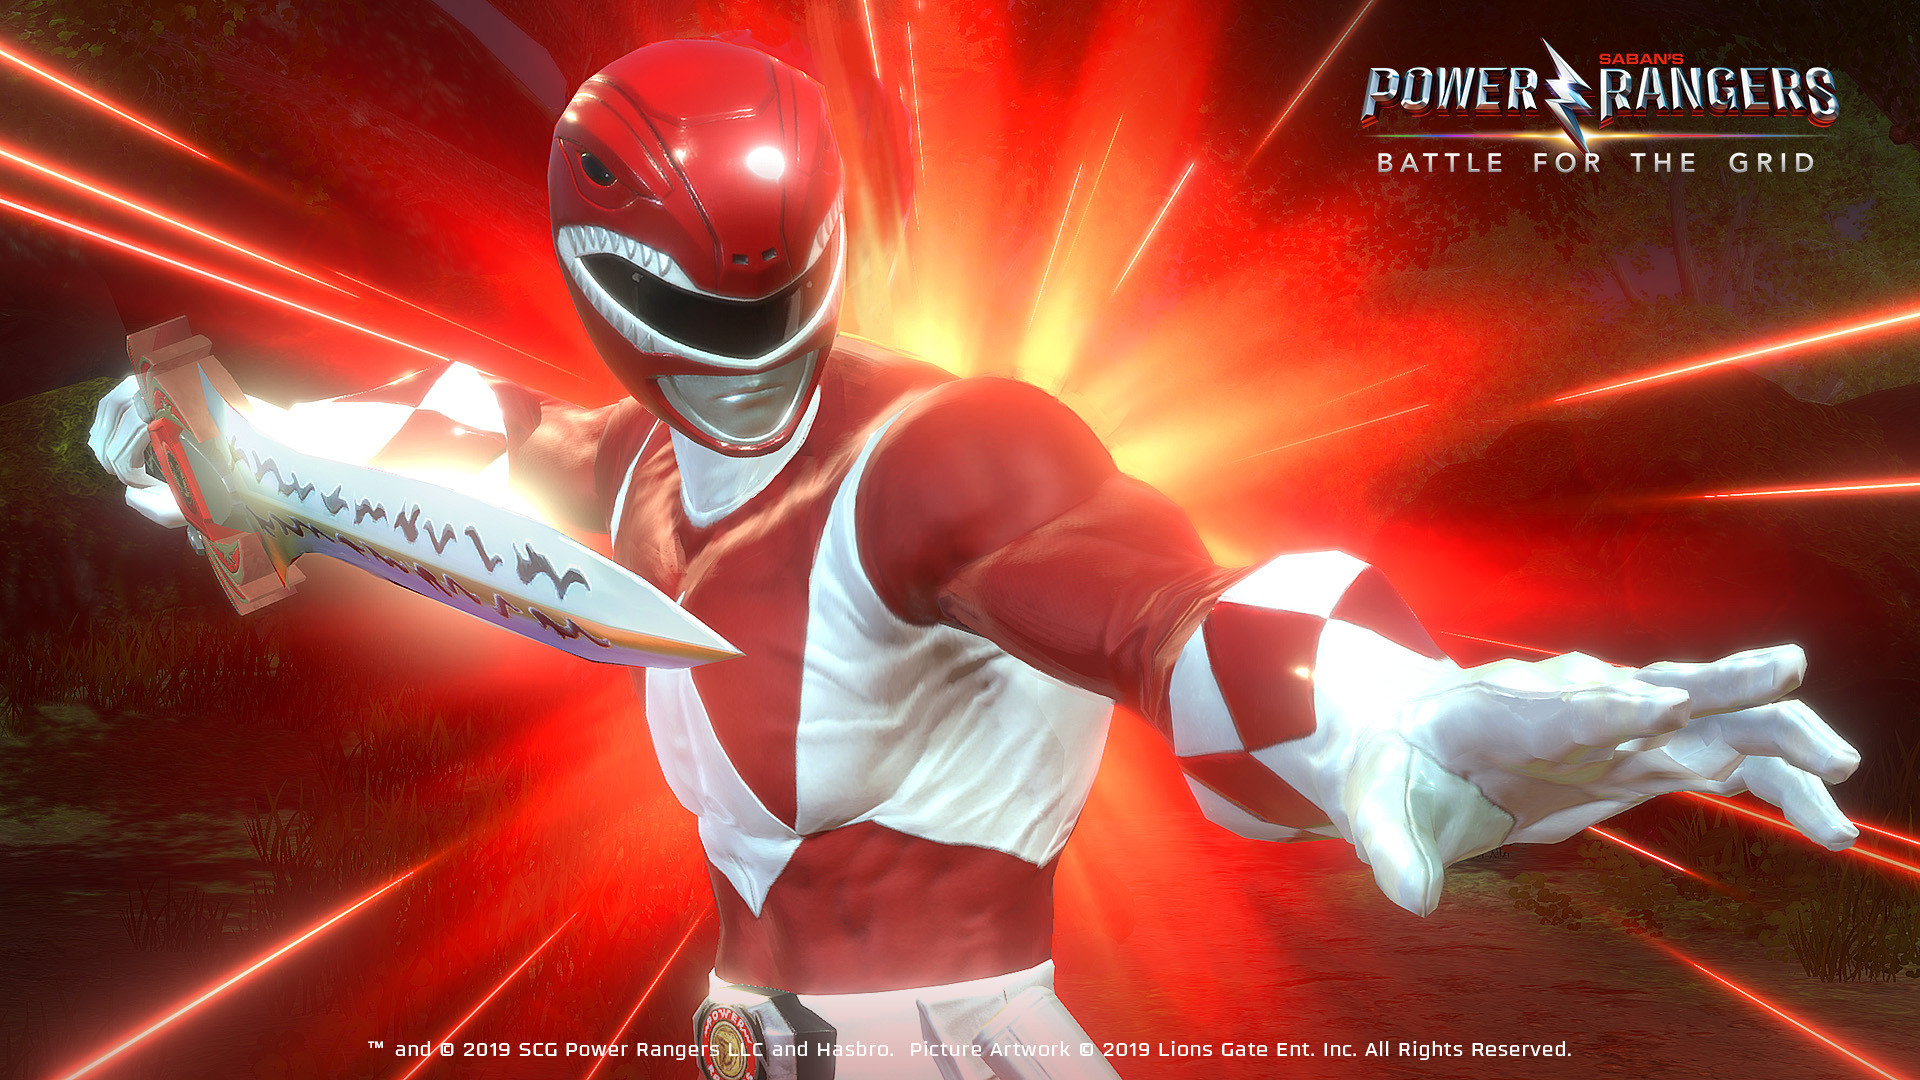 Click image for larger version  Name:	Power Rangers Battle for the Grid Promo Screen 4.jpg Views:	1 Size:	634.1 KB ID:	3492576